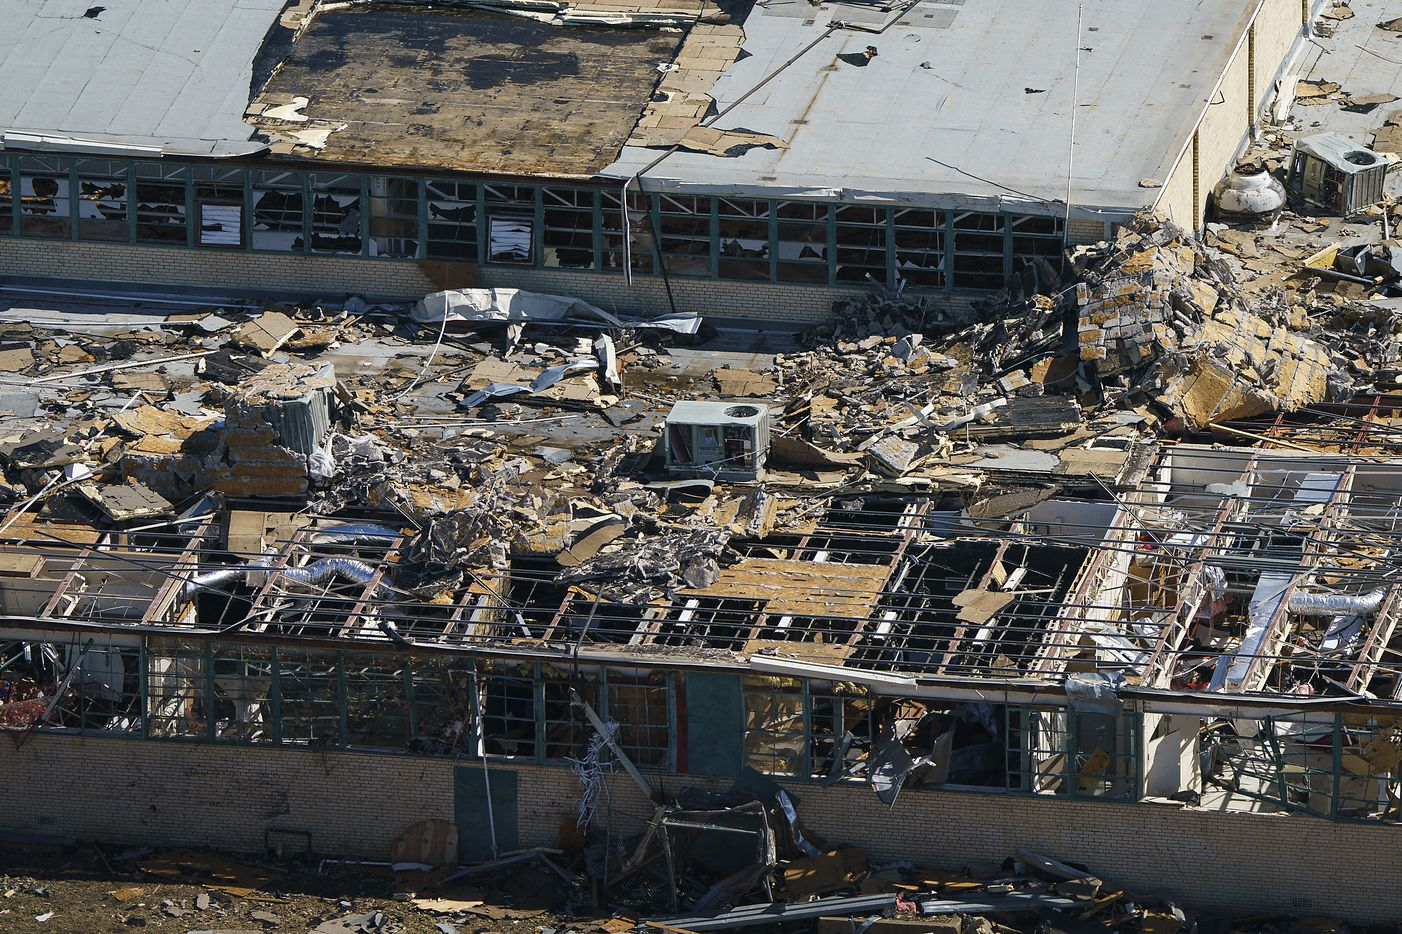 Tornado damage is seen an aerial view of Thomas Jefferson High School on Monday, Oct. 21, 2019, in Dallas. (Smiley N. Pool/The Dallas Morning News)